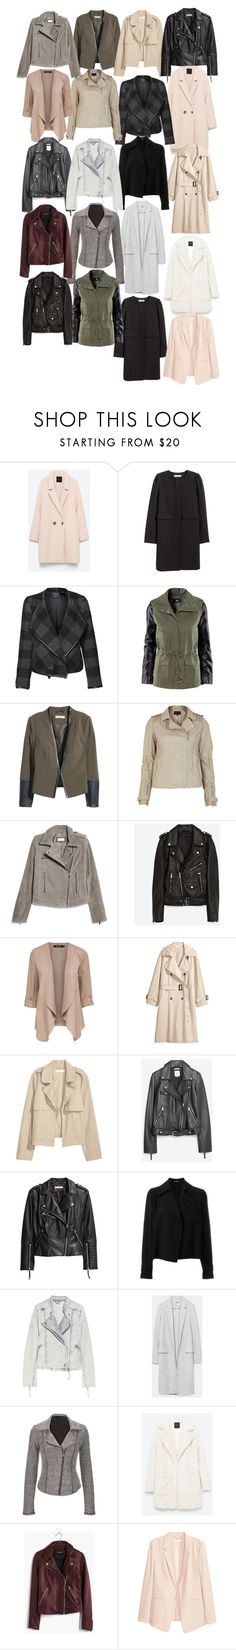 """""""Rebekah inspired jackets/coats"""" by tvdstyleblog ❤ liked on Polyvore featuring H&M, Devoted, River Island, MANGO, Jakke, Zara, Theory, IRO, maurices and Belgique"""